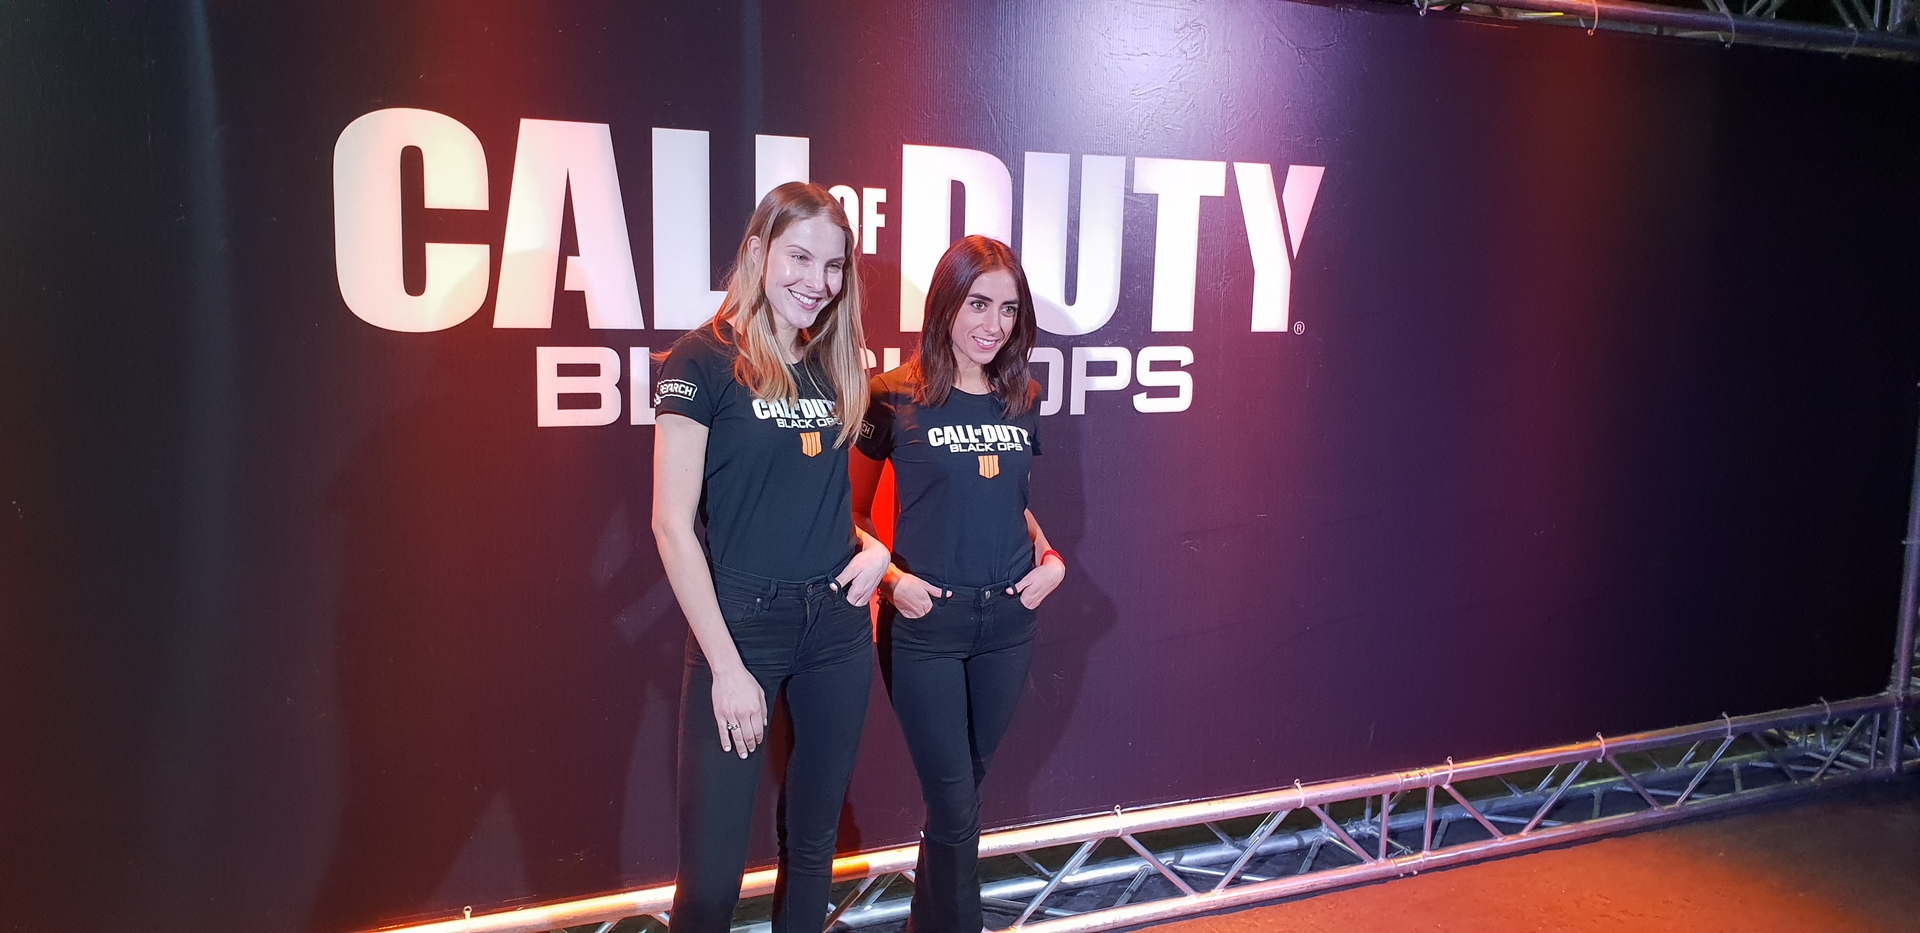 Call of Duty: Blacks Ops 4 se lanzó en Chile y fuimos a perder por un kill